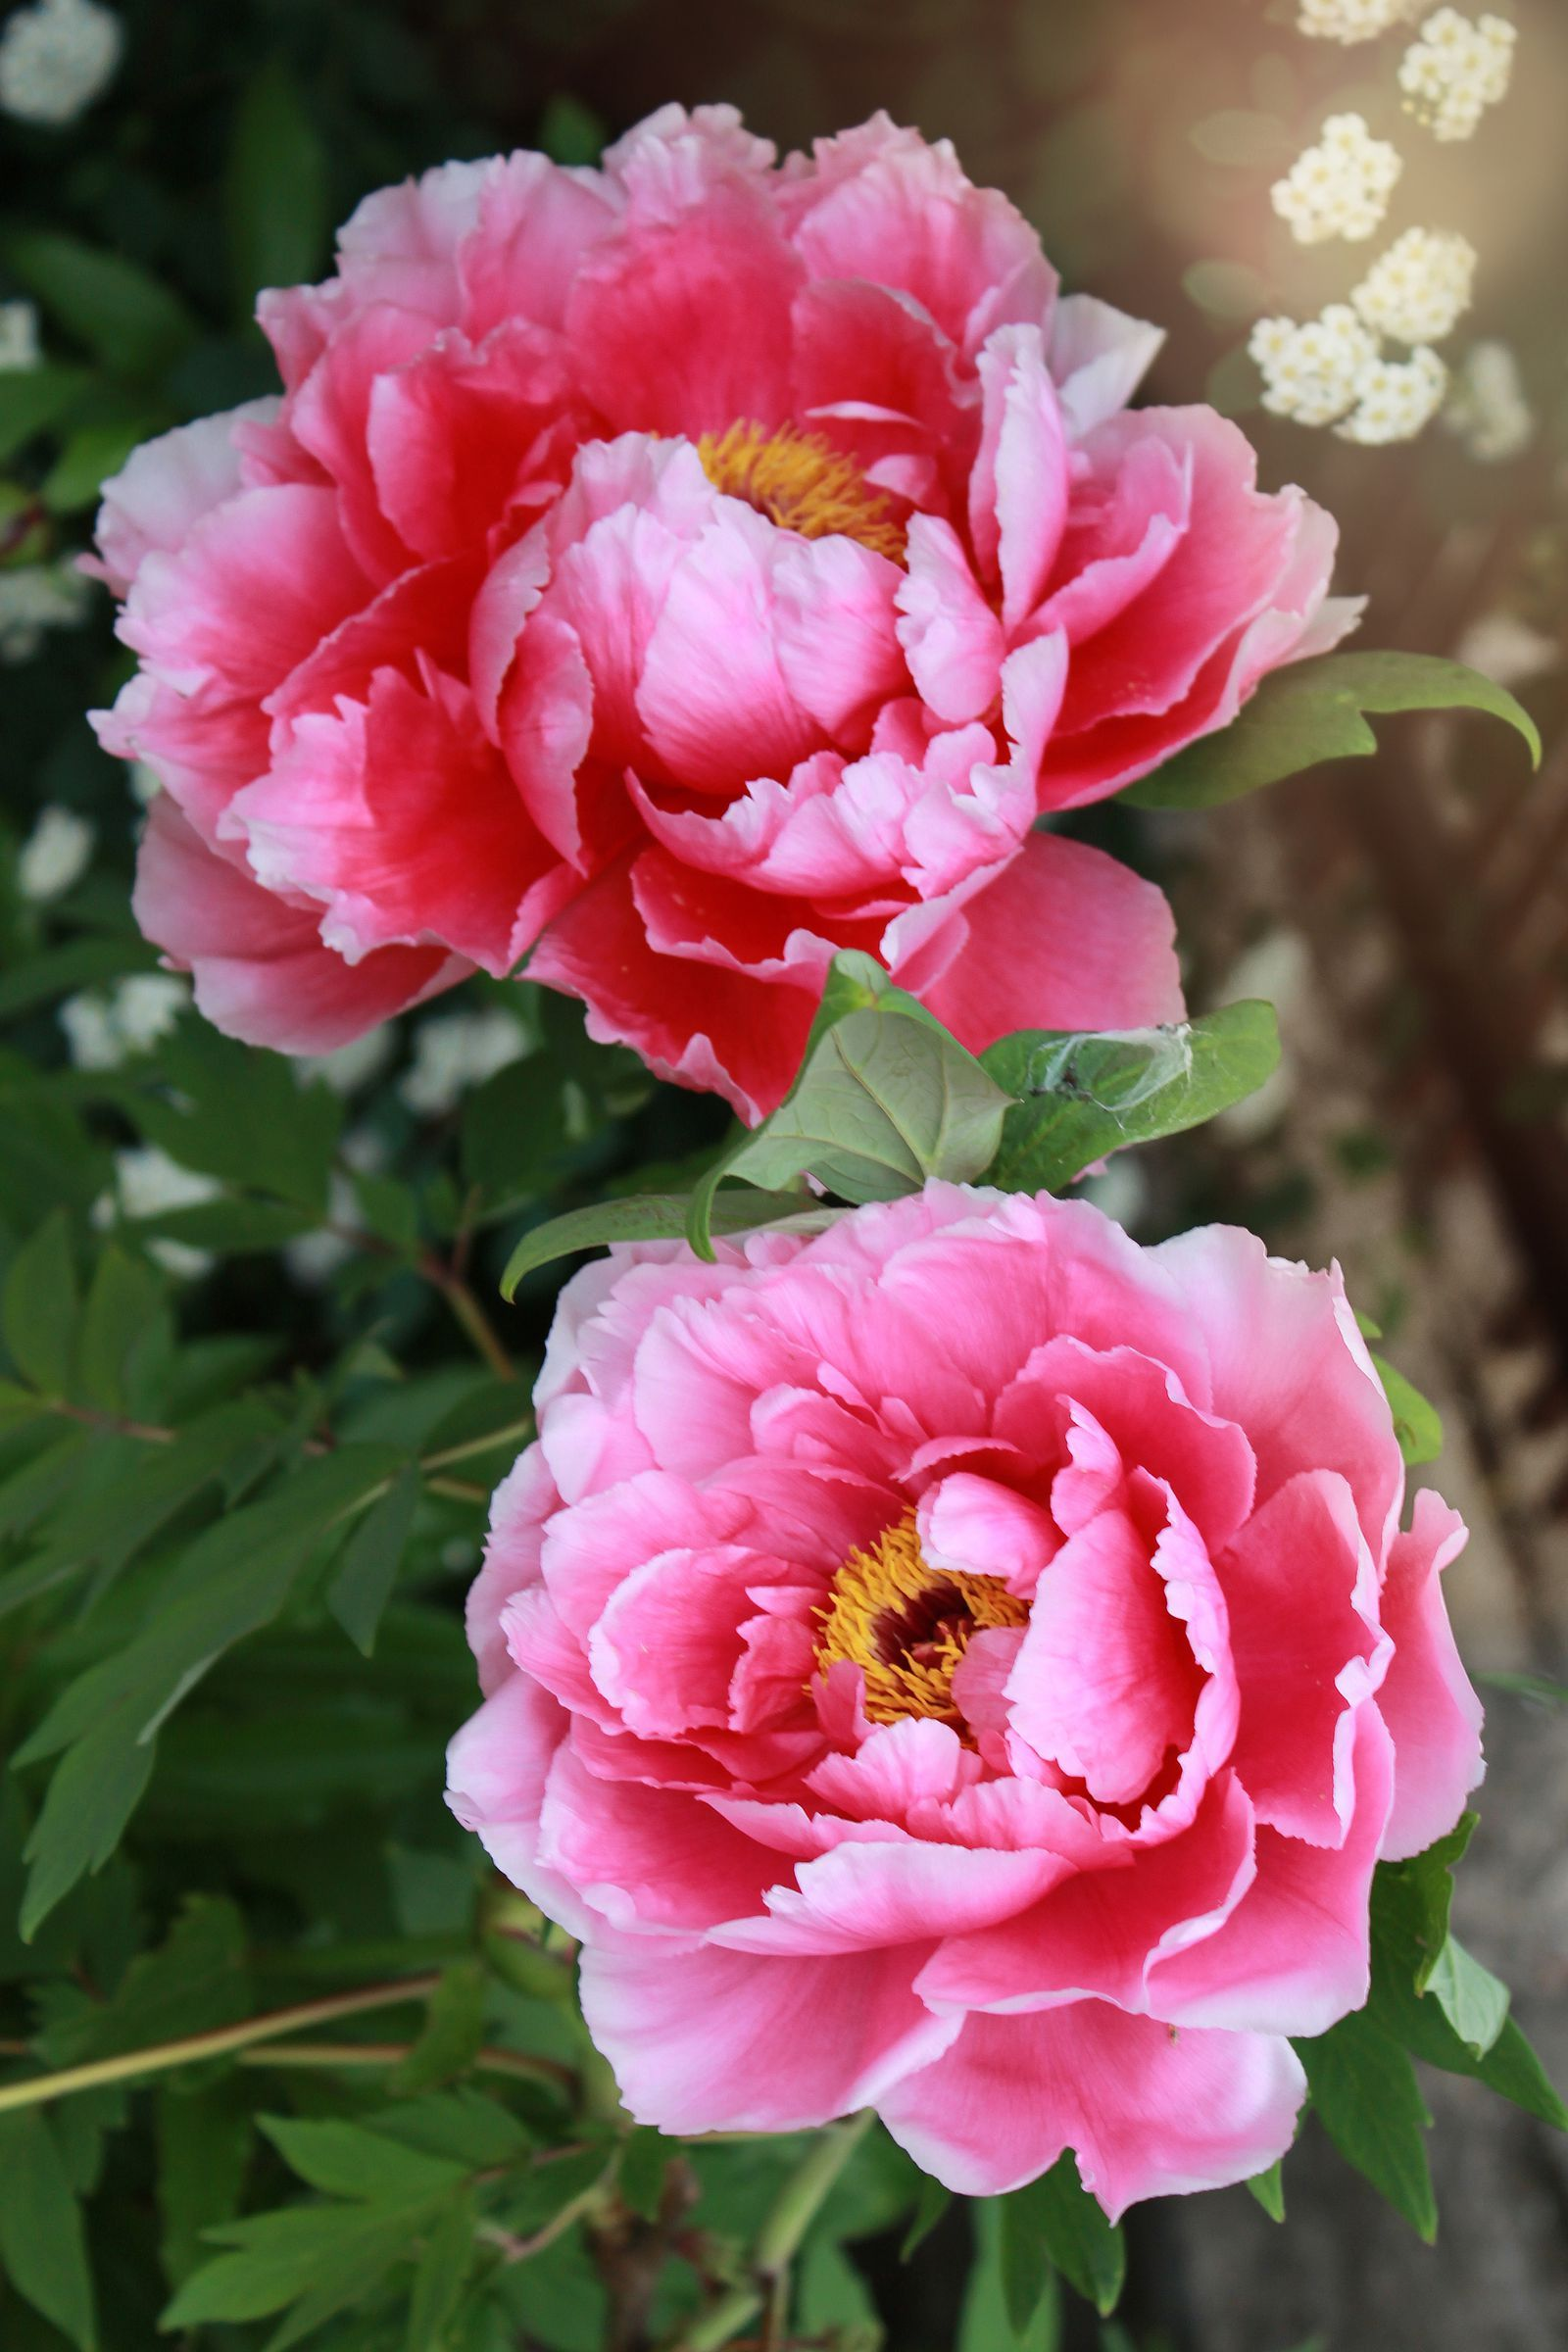 Plant These Pretty Pink Flowers For The Most Enchanting Garden Ever Peony Meaning Pink Flowers Beautiful Pink Flowers